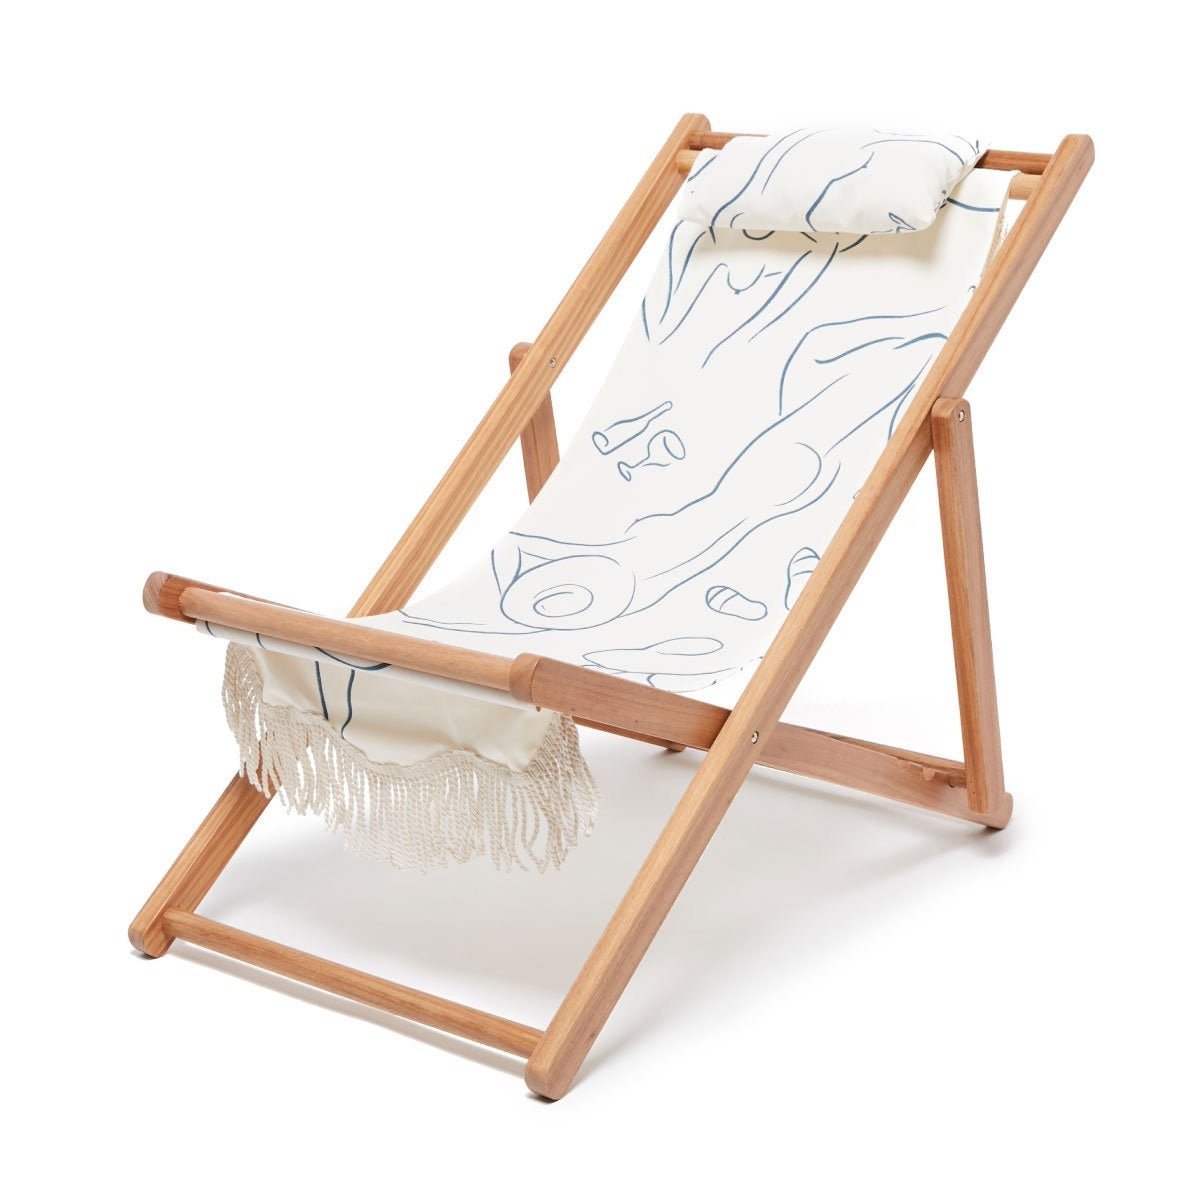 Business & Pleasure Le Basque Sling Chair. Wood rails and white fabric with a blue stripped design and a head pillow attached at the top.